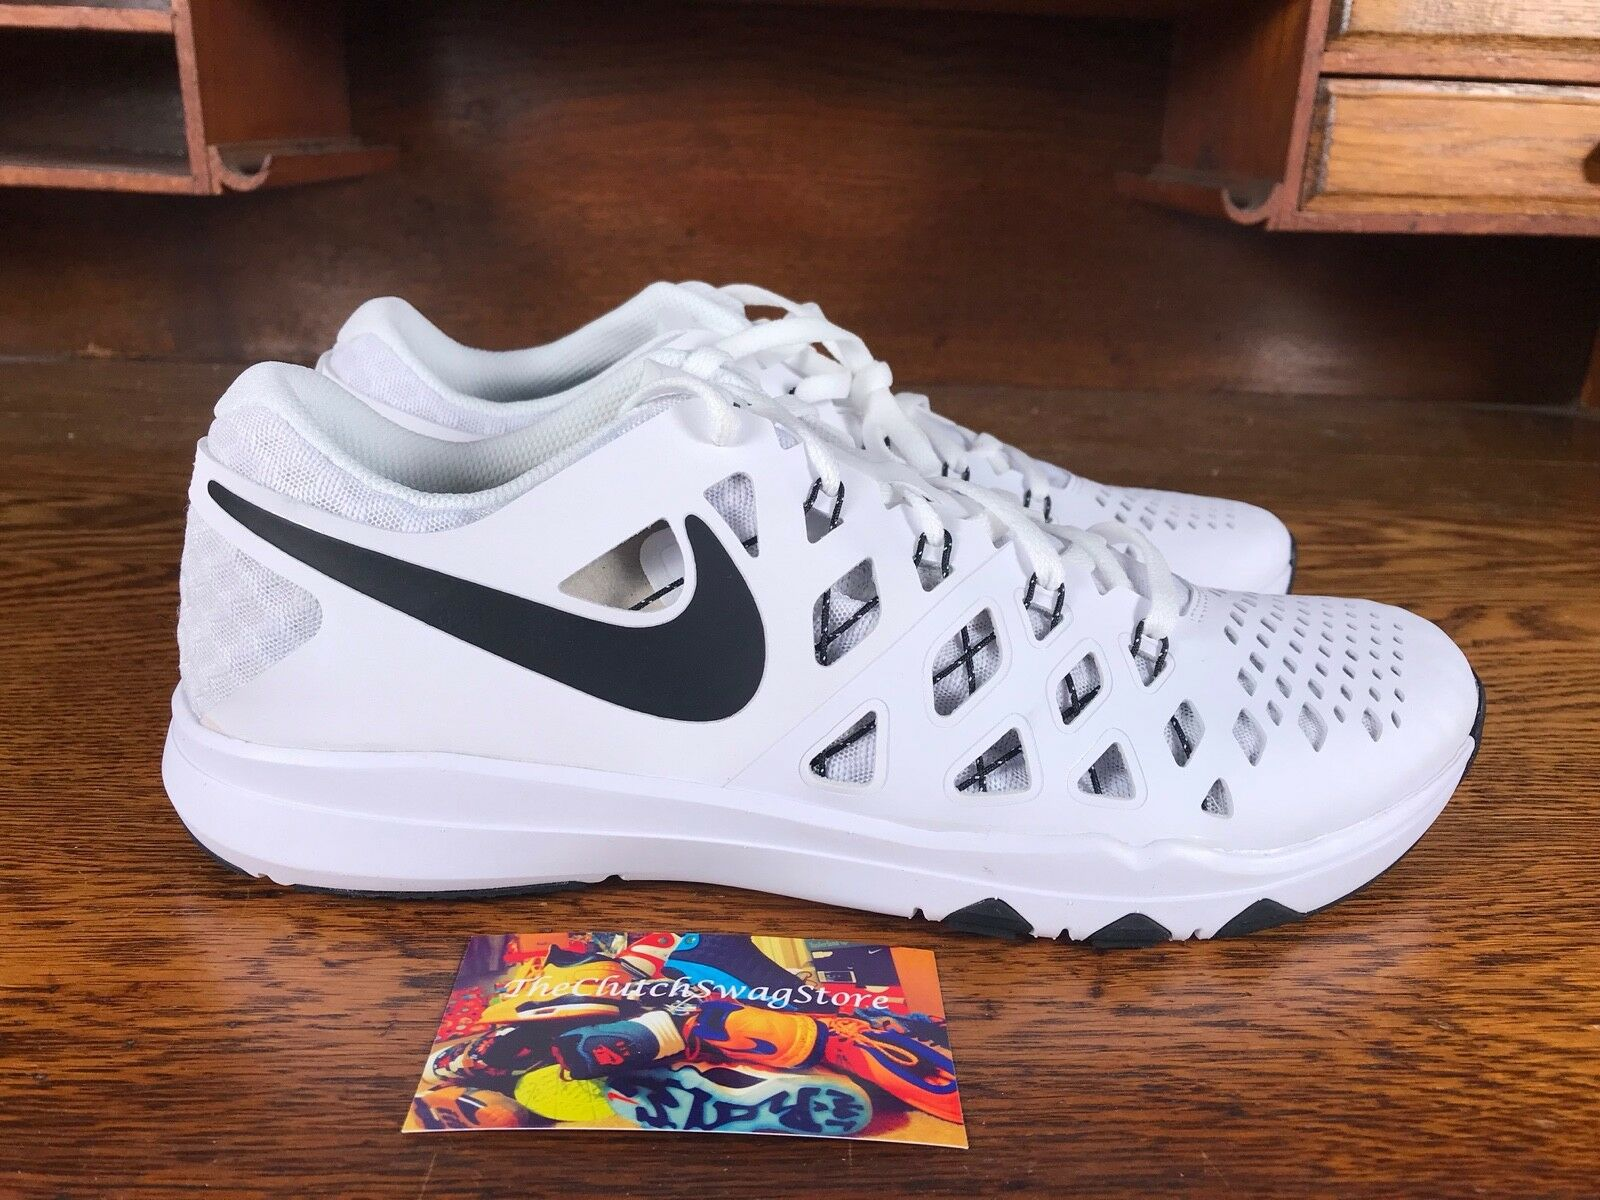 Nike Train Speed 4 Mens Running Training shoes White Black 843937 103 Multi Sizs